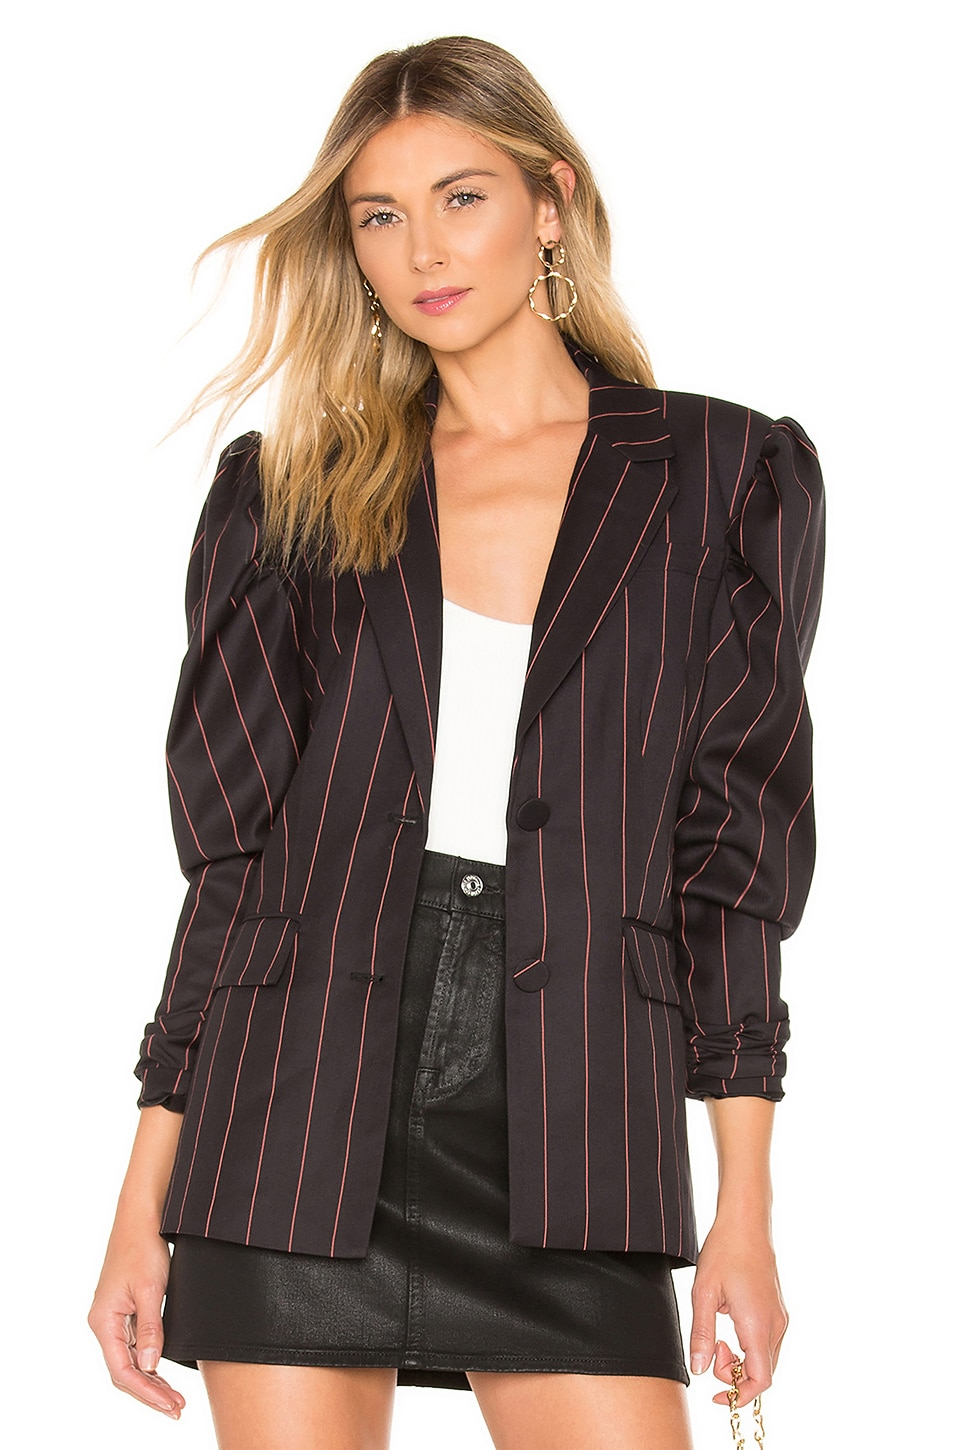 L'ACADEMIE The Natalie Jacket in Black